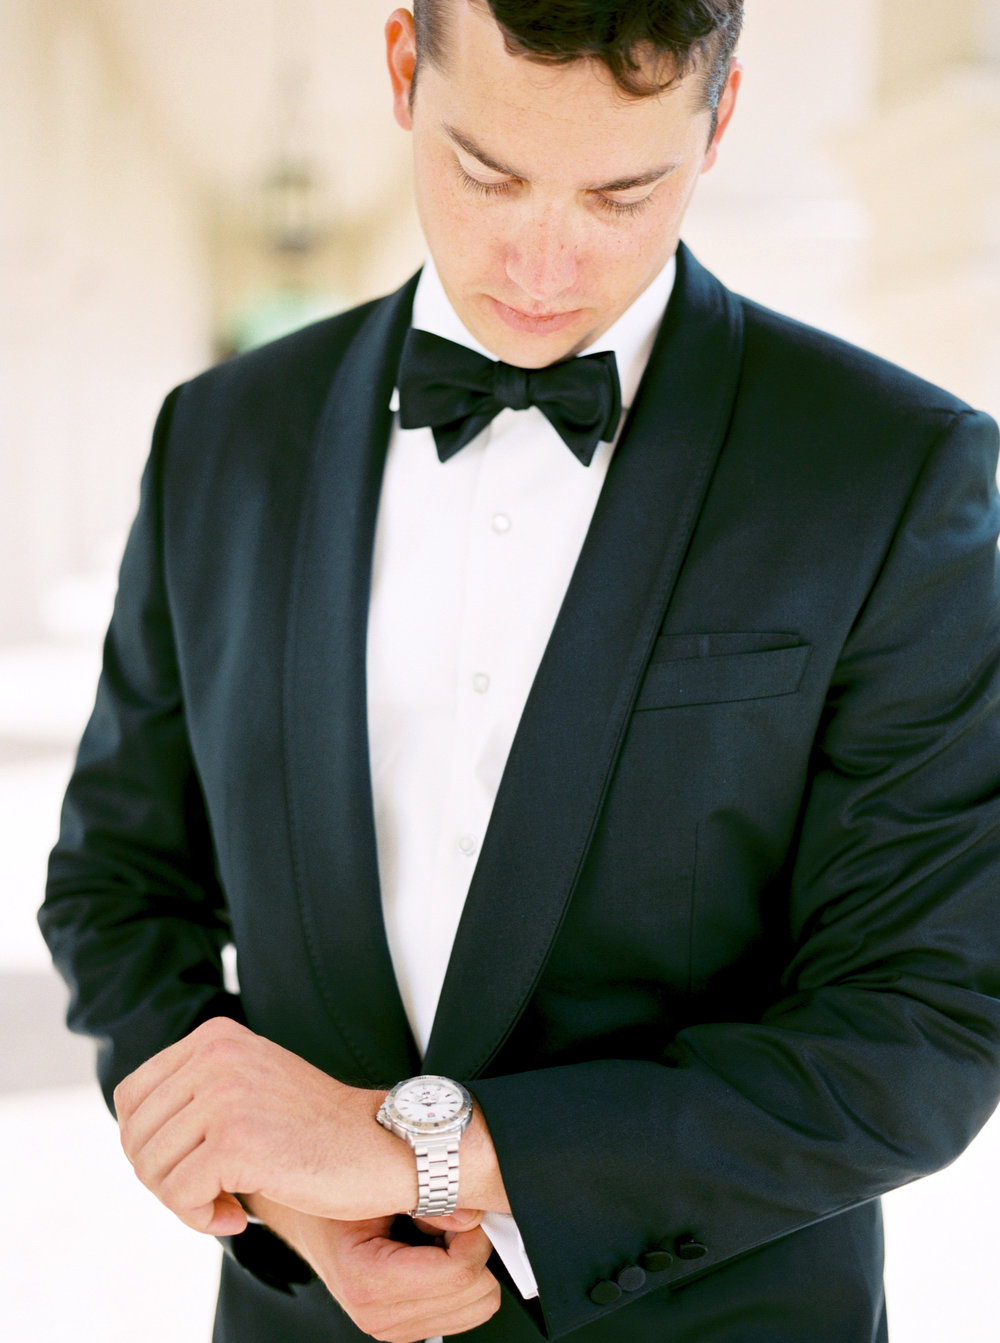 groom, groom details, formal groom attire, groom tux